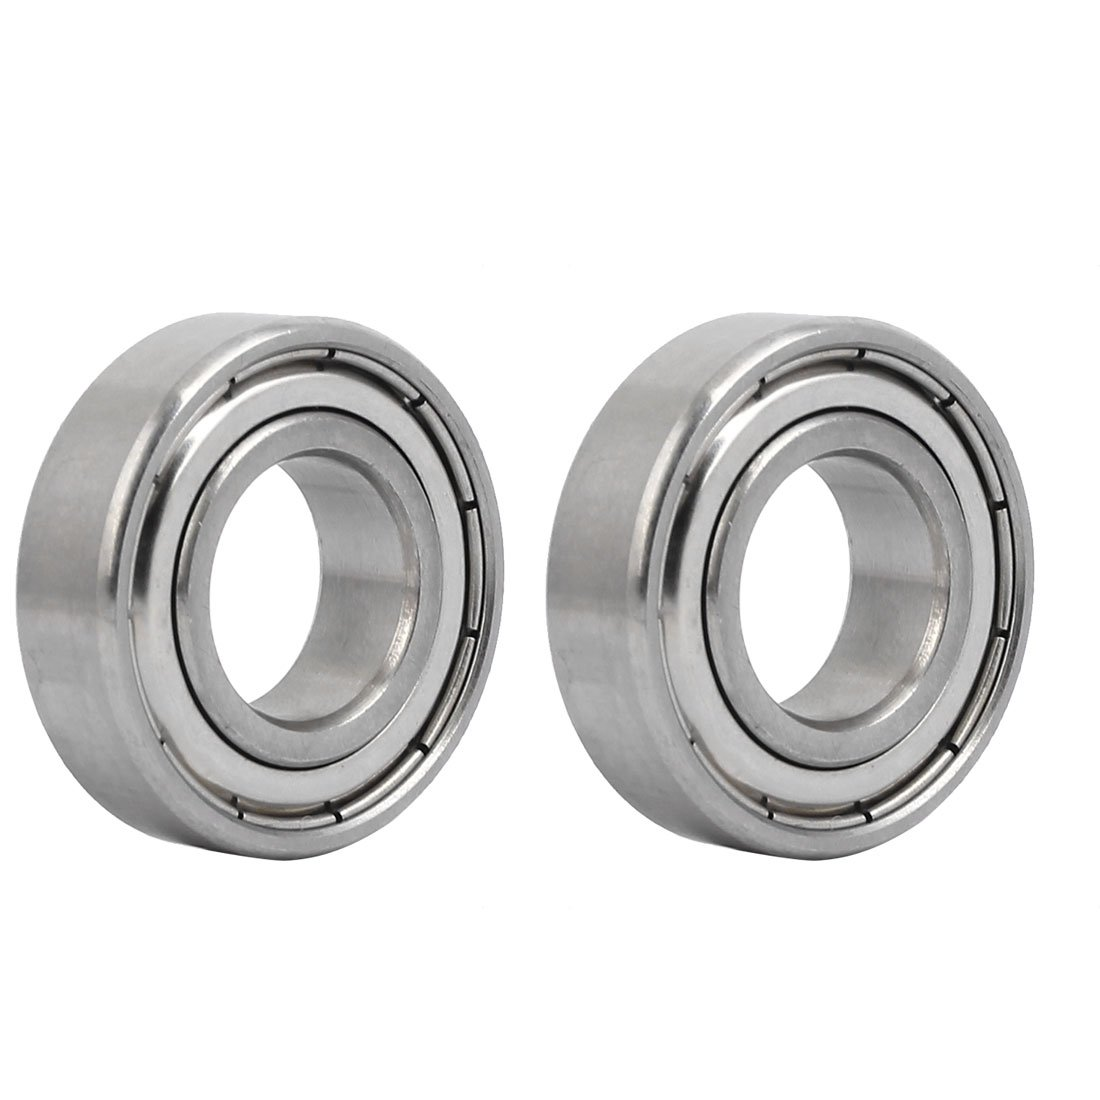 uxcell35mmx17mmx10mm Stainless Steel Single Row Double Shielded Deep Groove Ball Bearing 2pcs